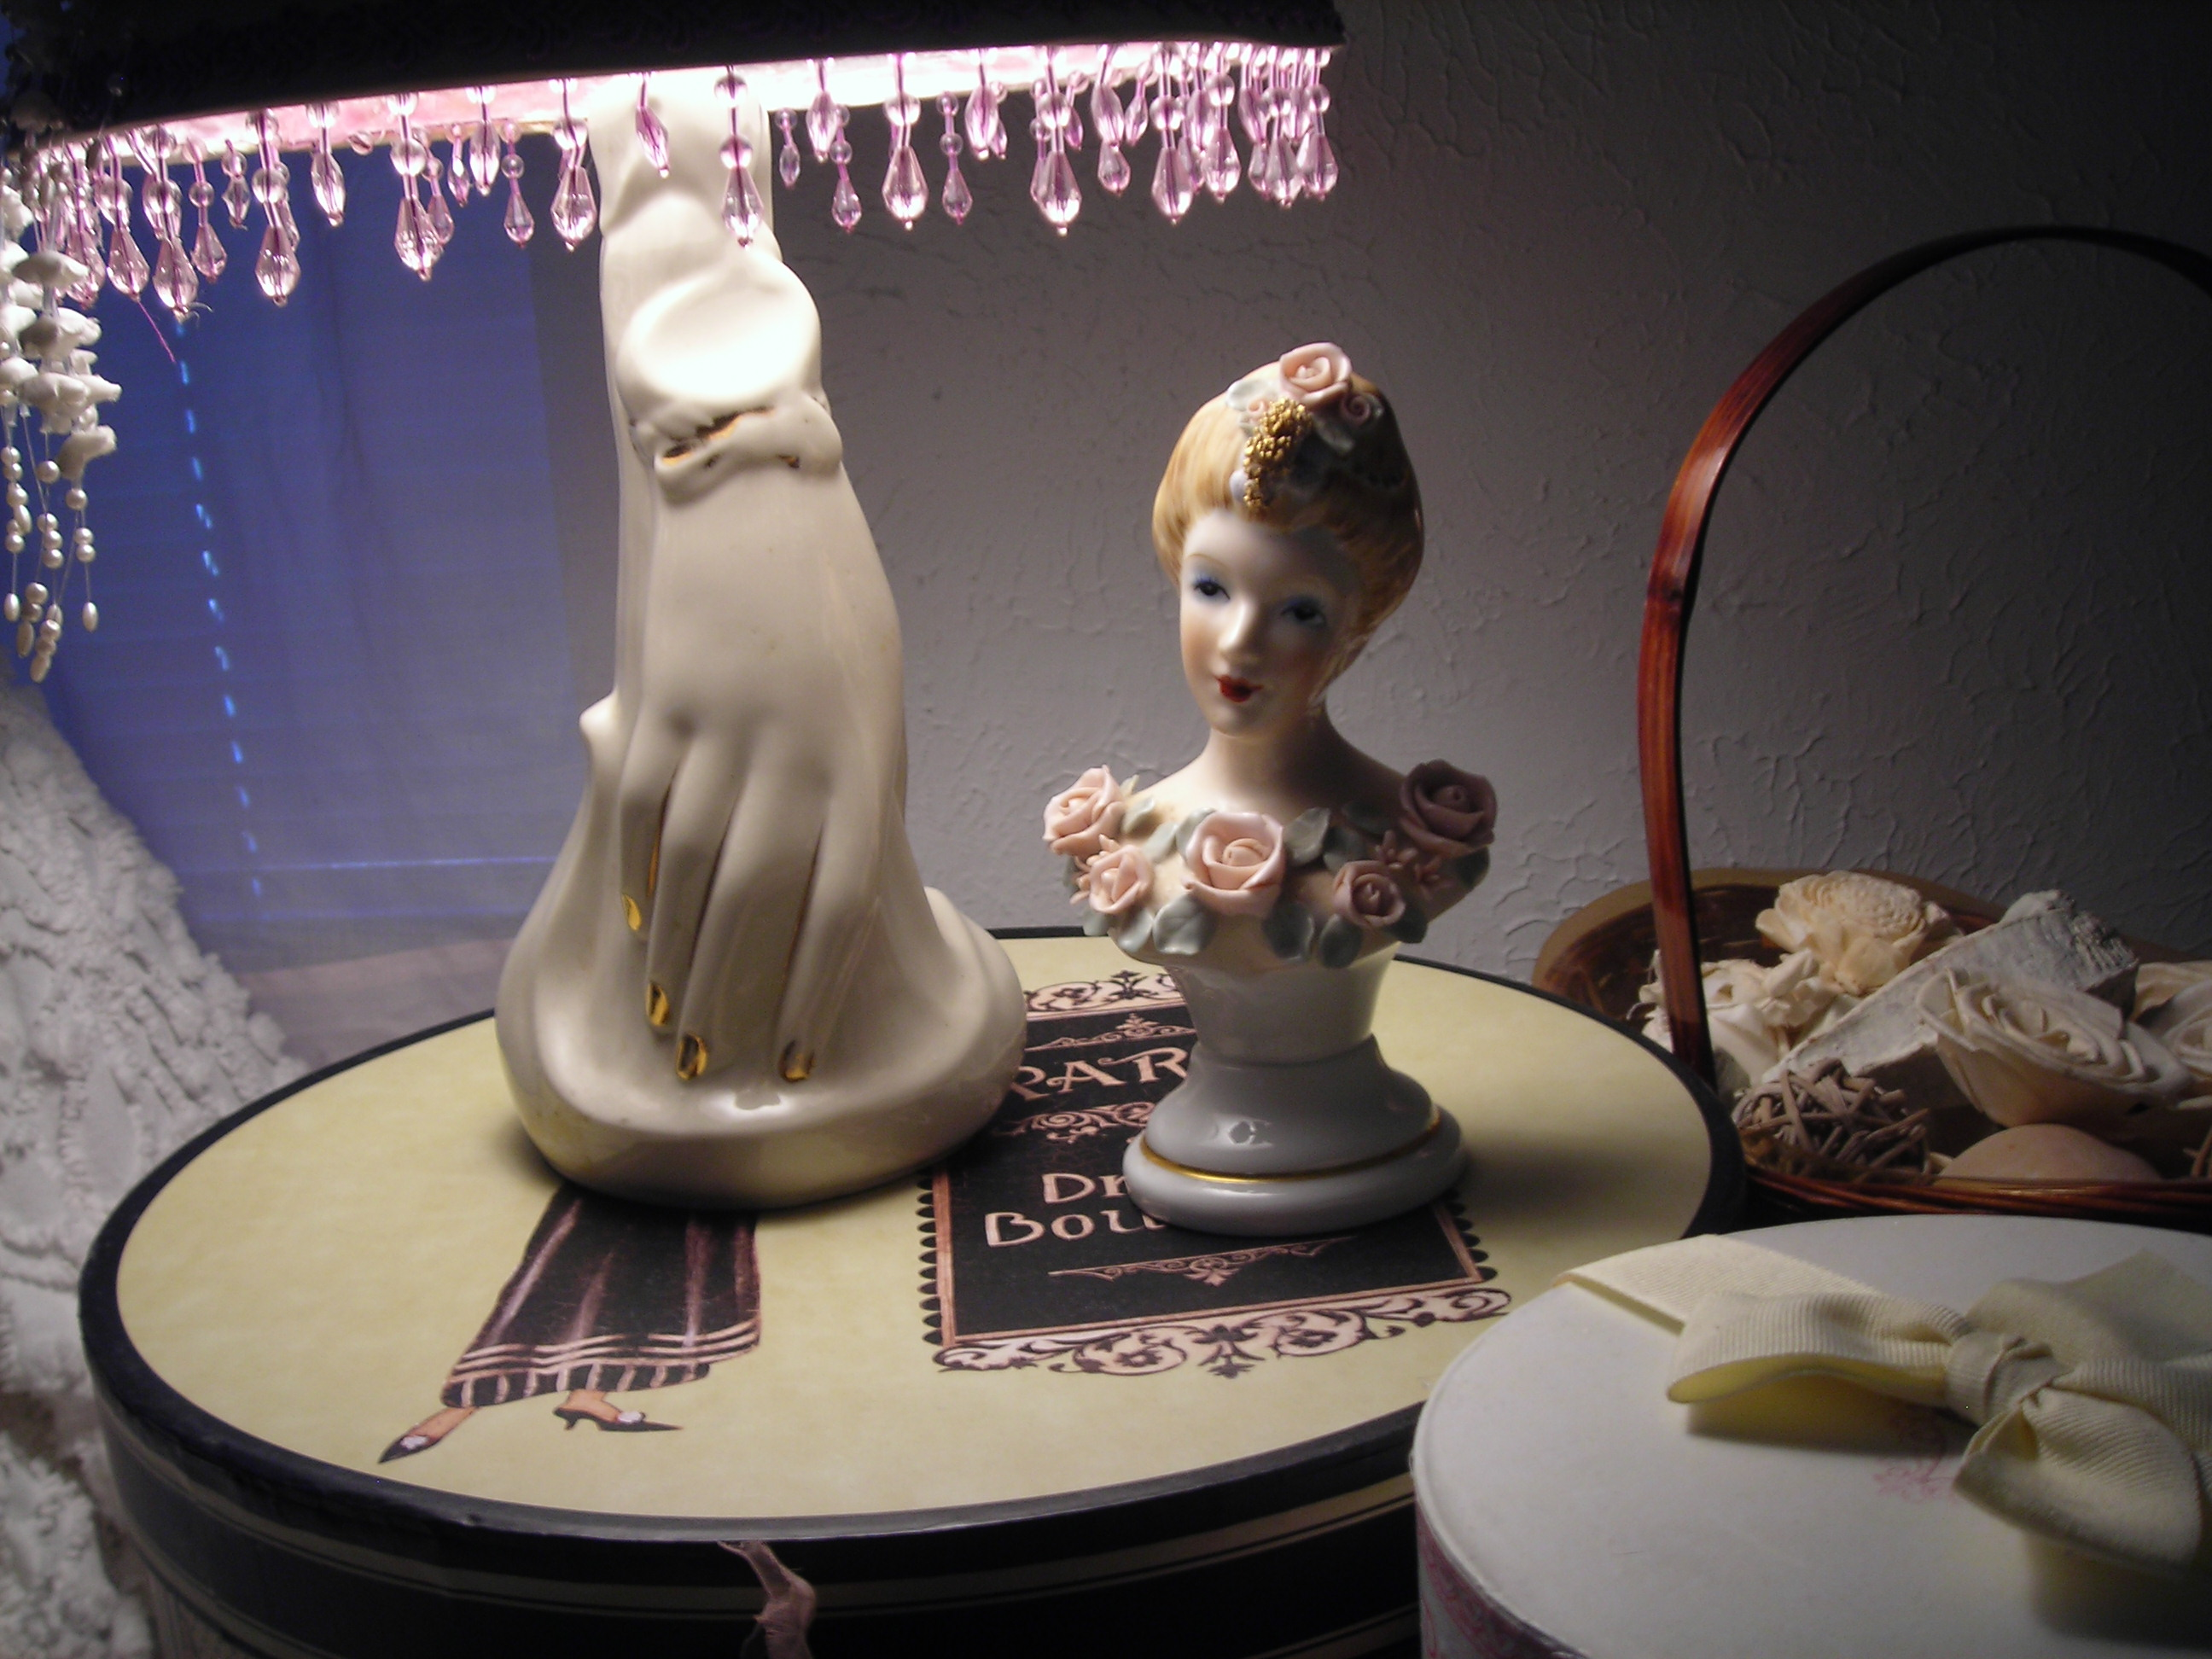 sweet little lady figurine